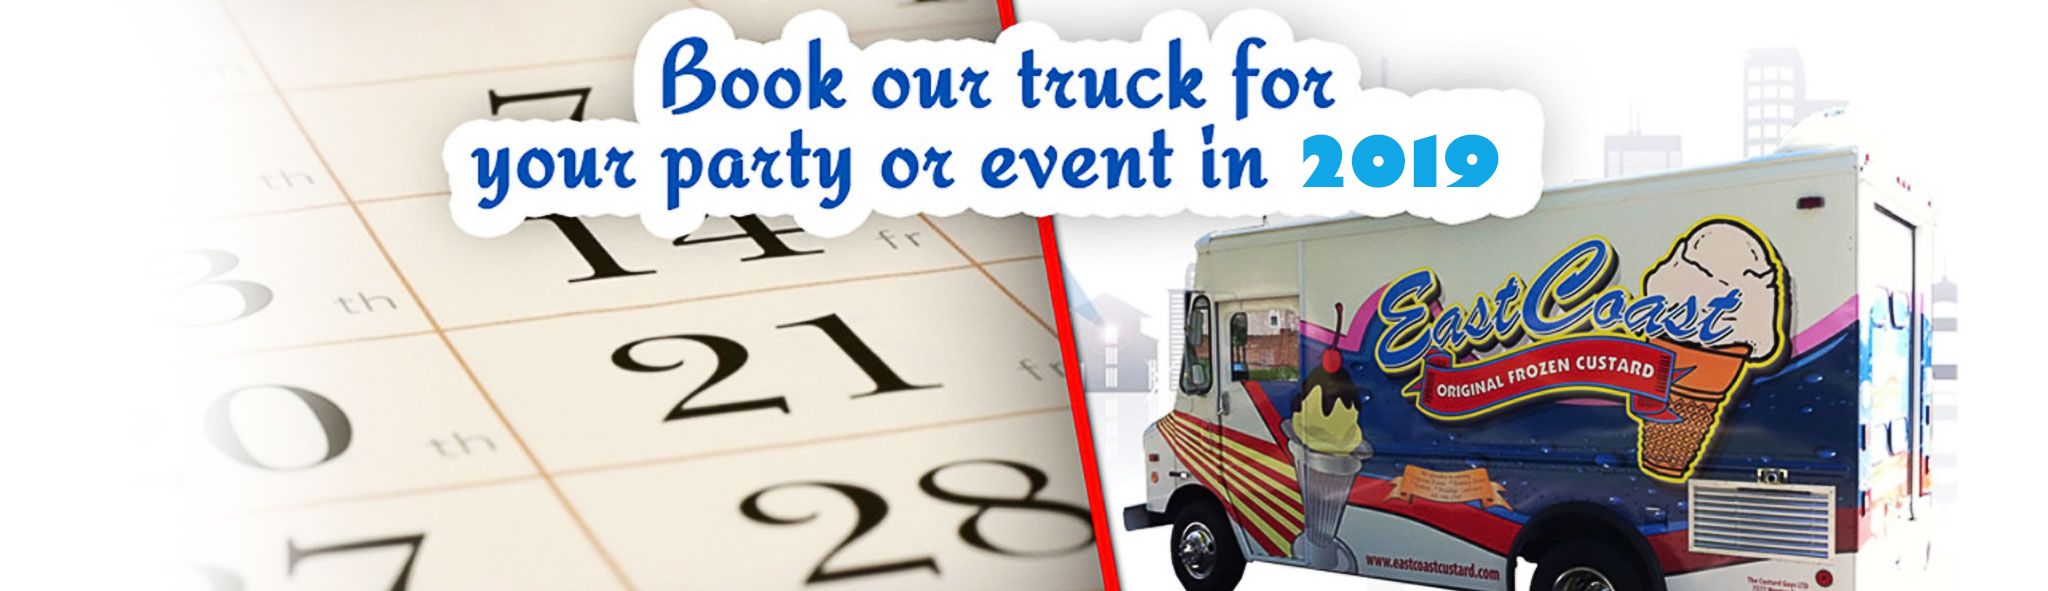 Book Our Truck for your party or event.